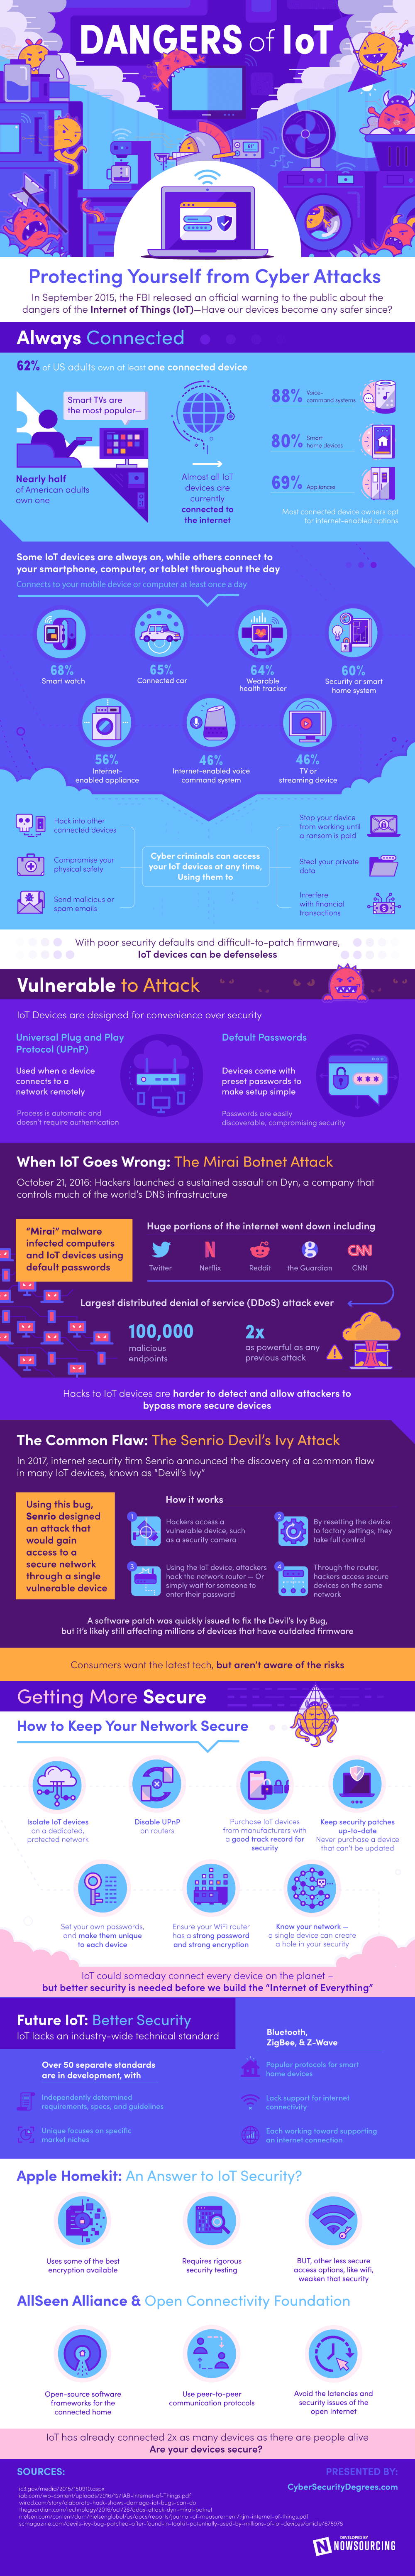 Dangers of the Internet of Things [Infographic]